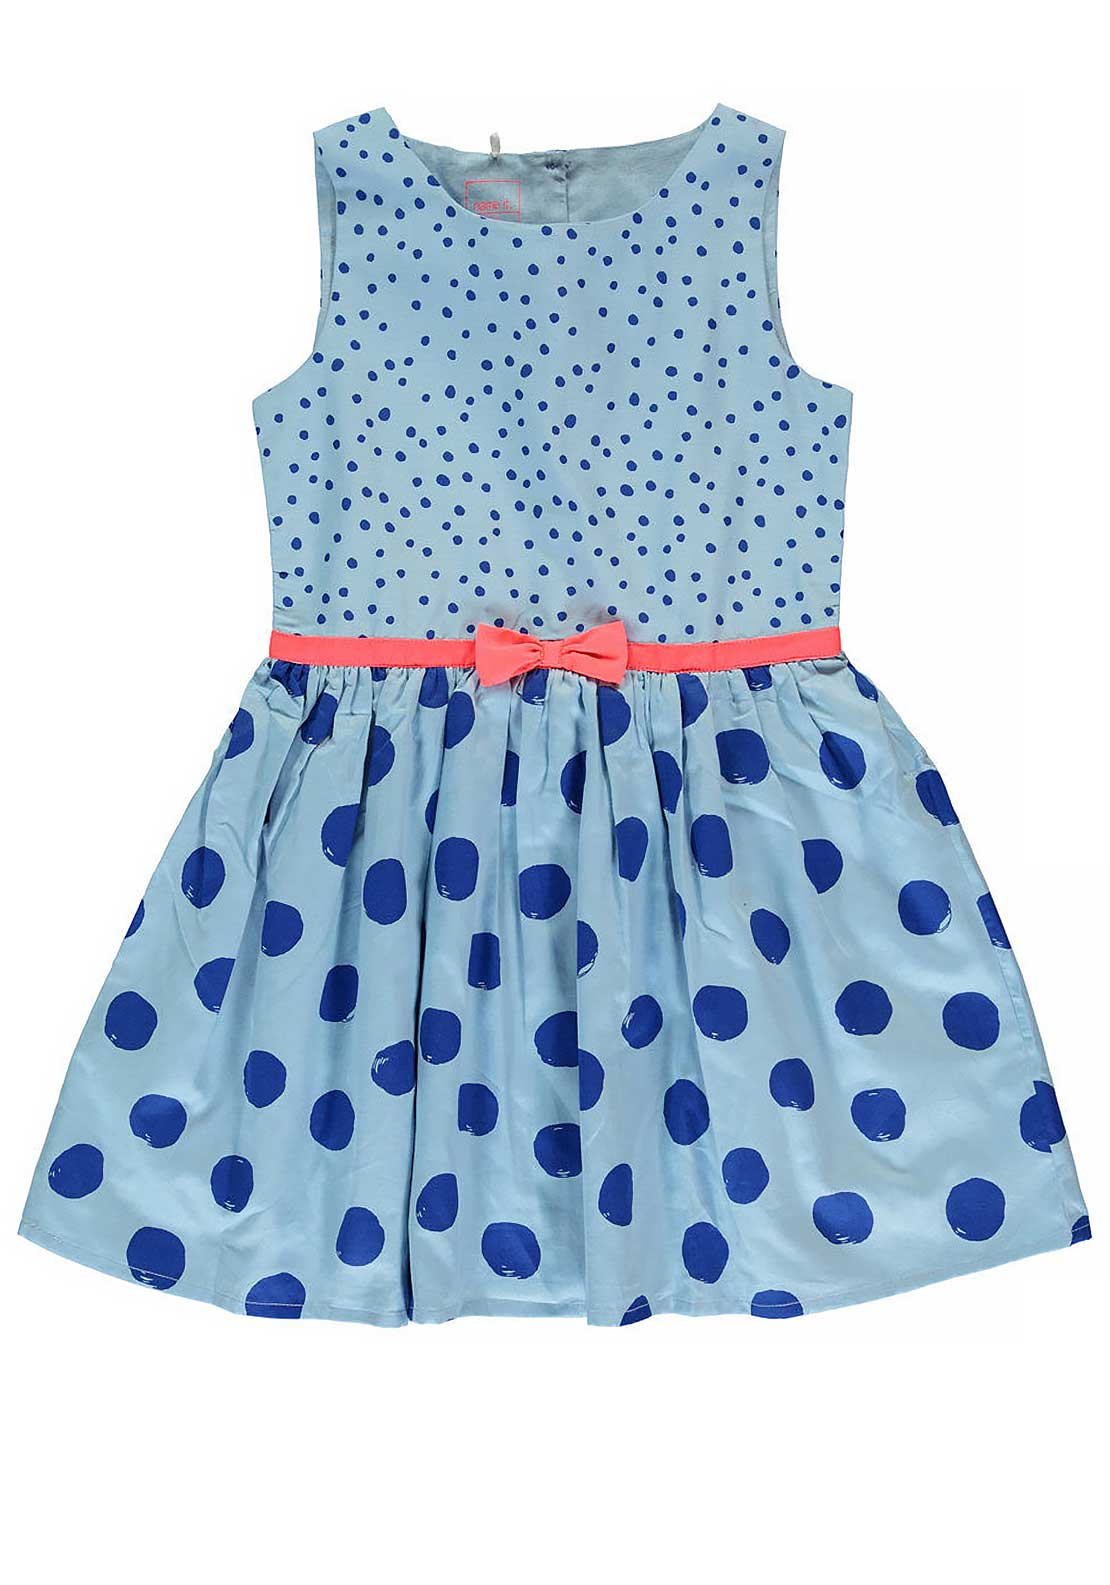 Name It Girls Polka Dot Bow Dress, Cashmere Blue